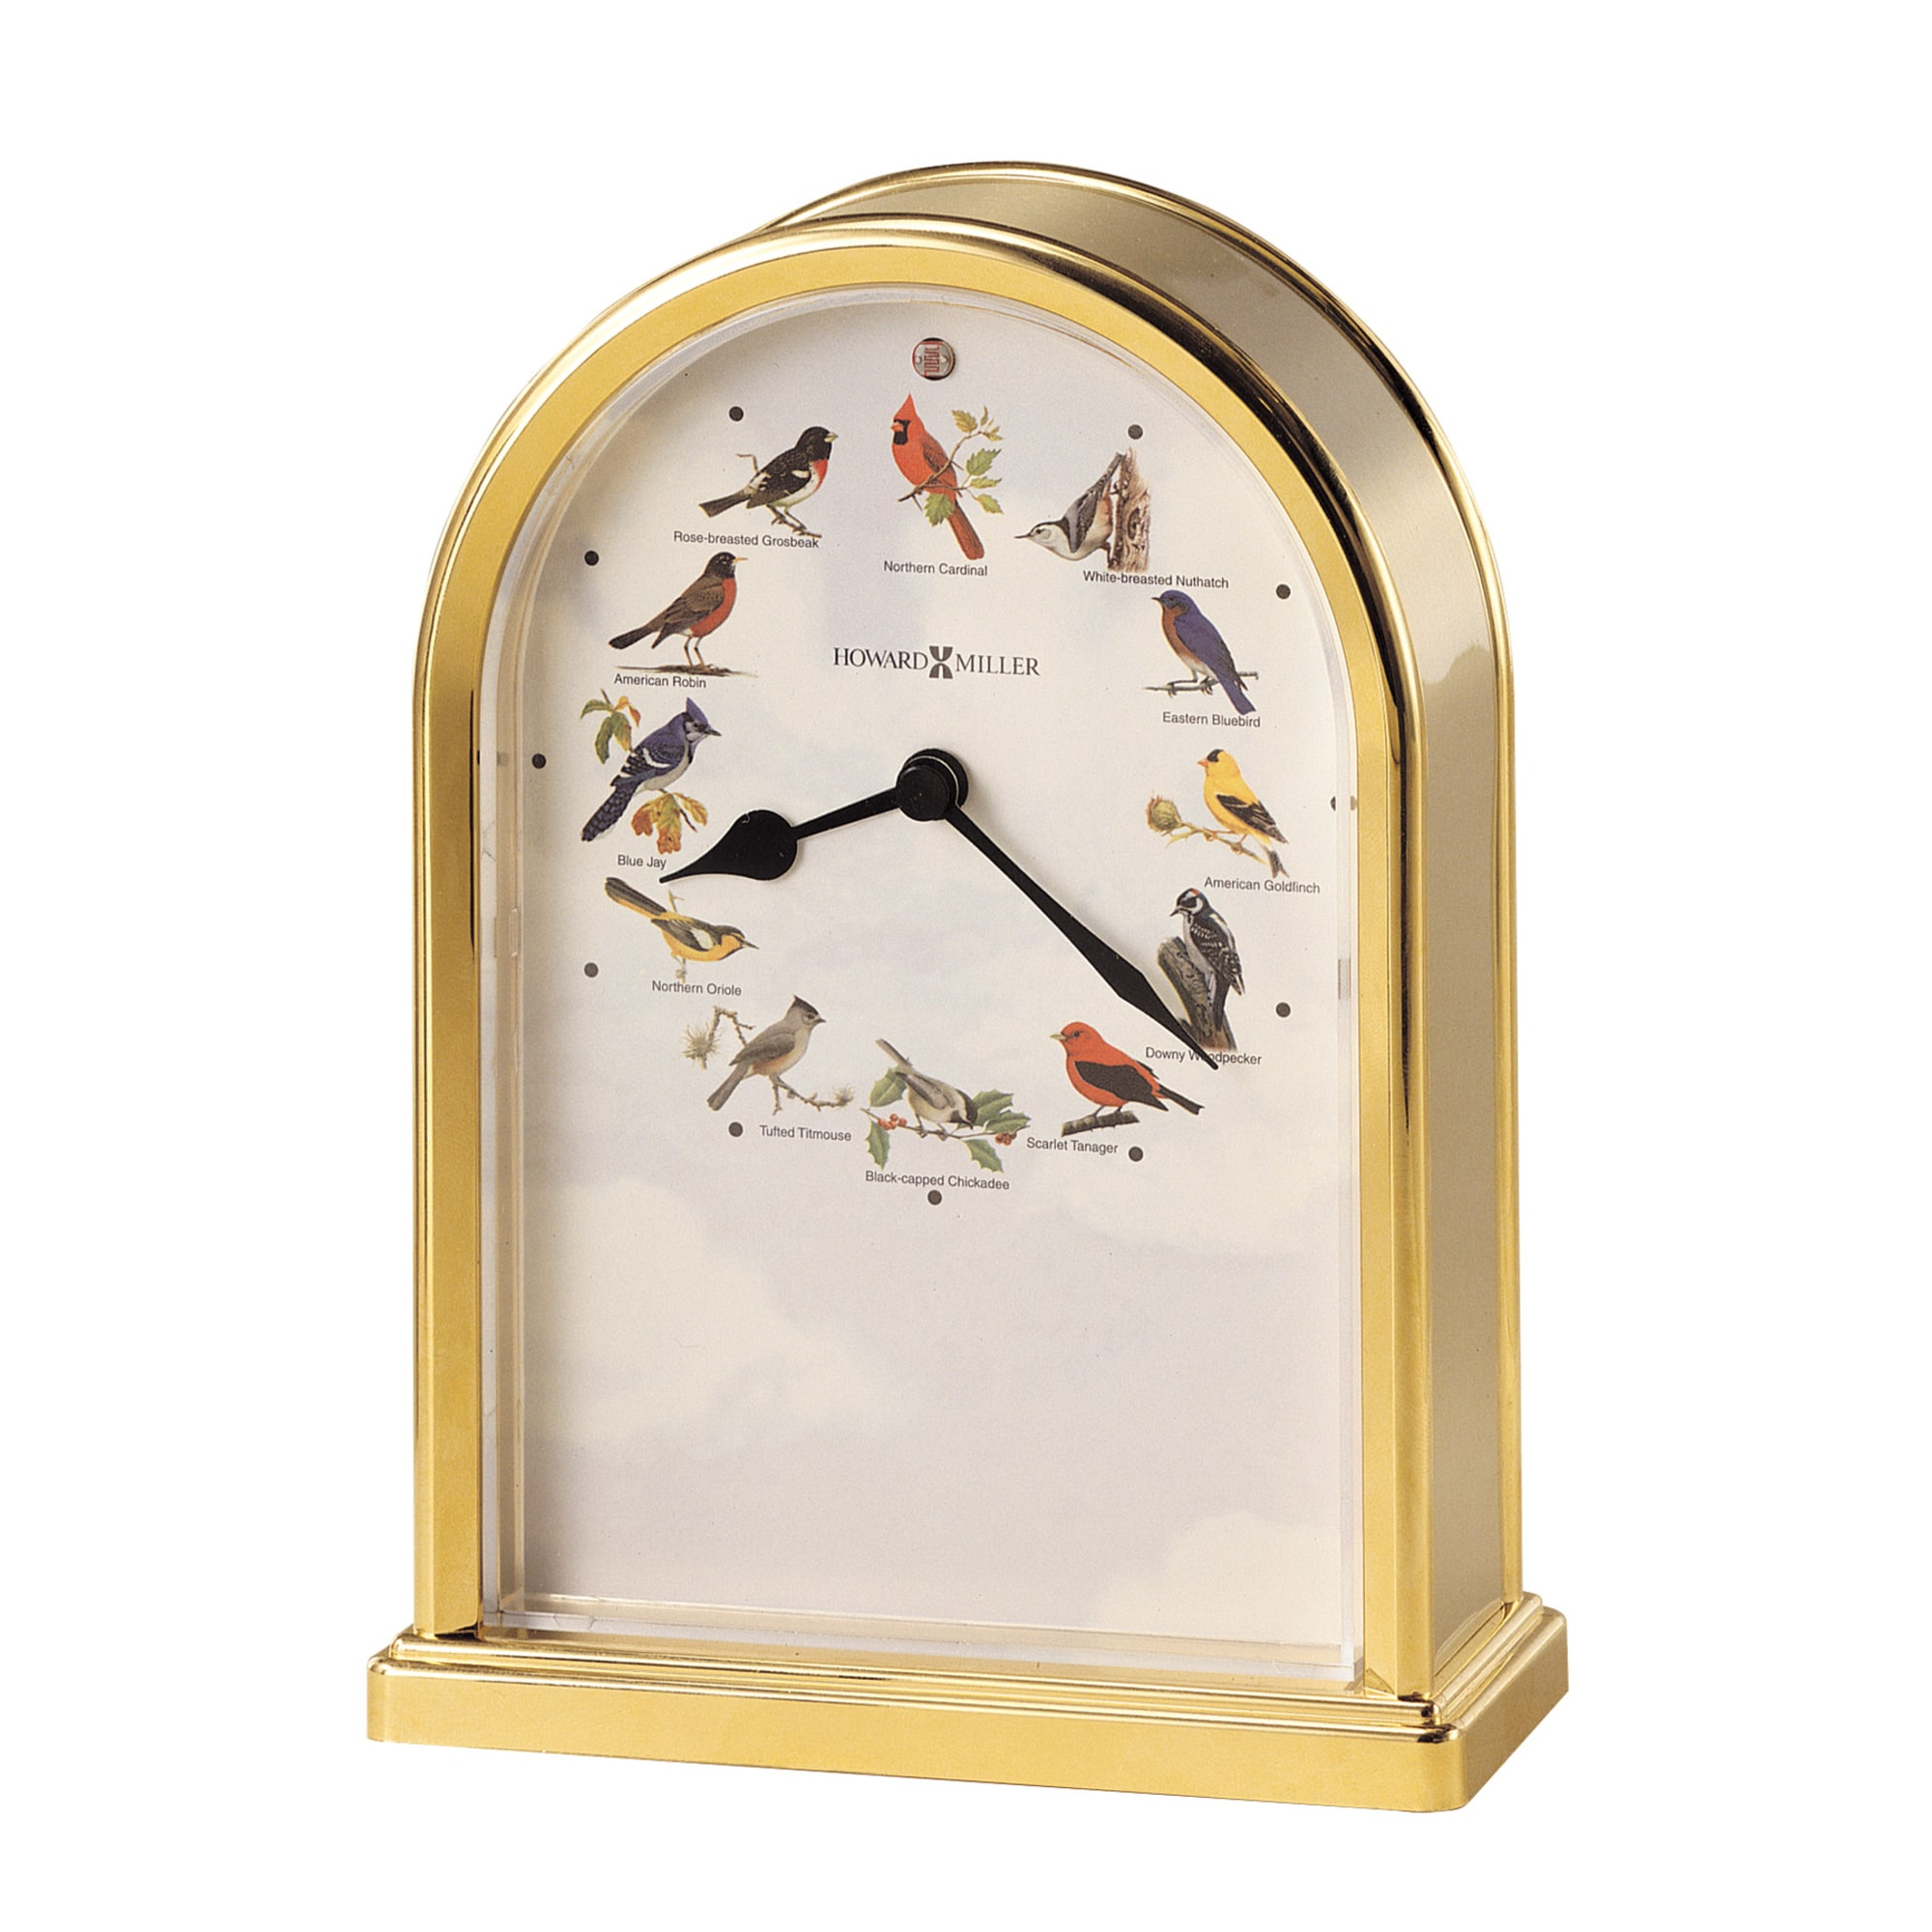 Image for Howard Miller Songbirds of North America III Brass Table Clock 645405 from Howard Miller Official Website